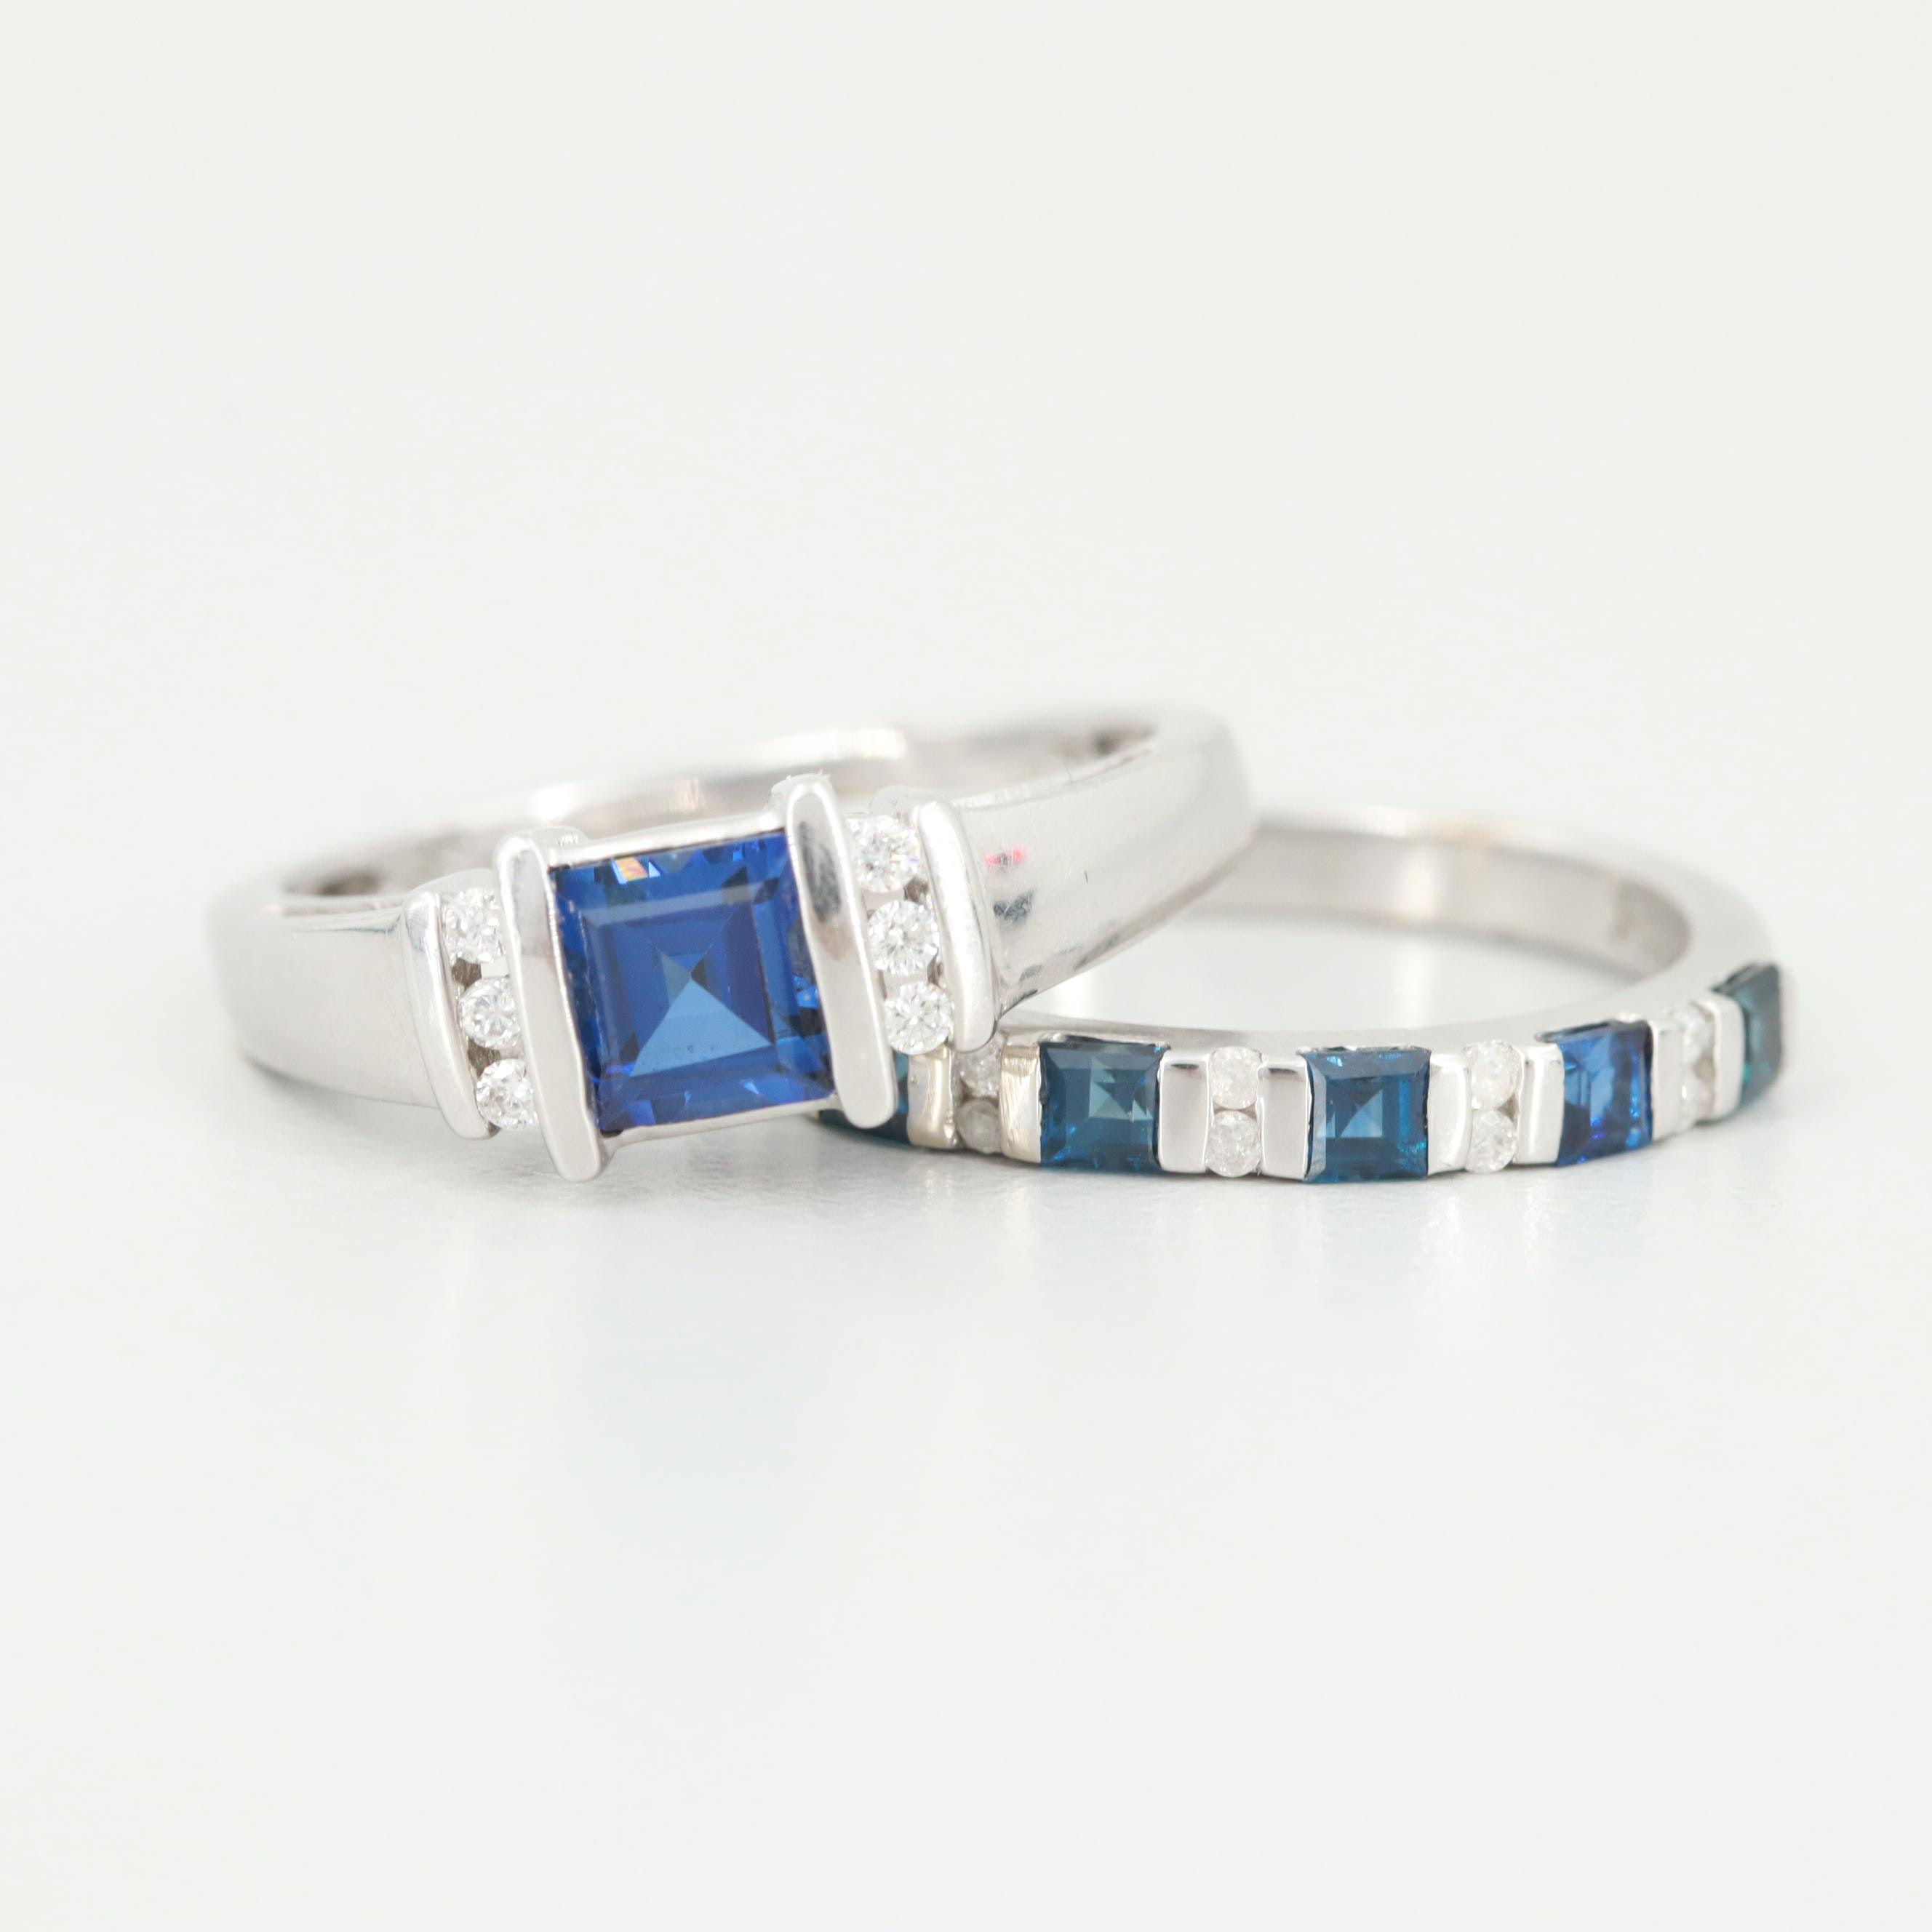 14K White Gold Sapphire and Diamond Ring Set